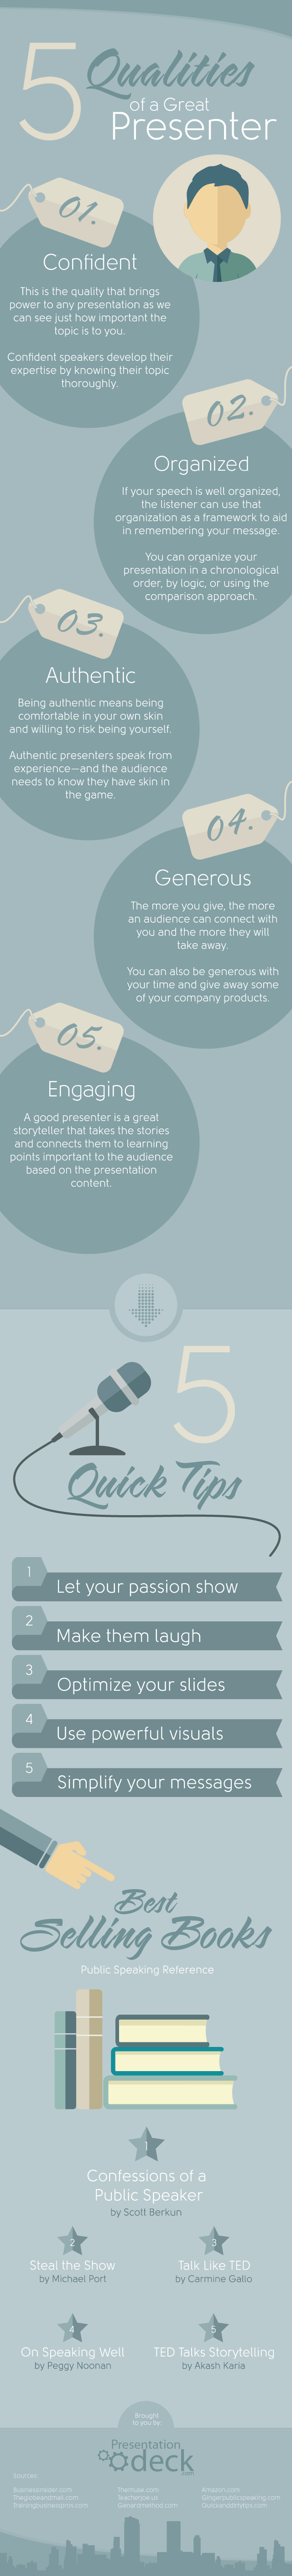 Essential Qualities For A Successful Presentation Infographic